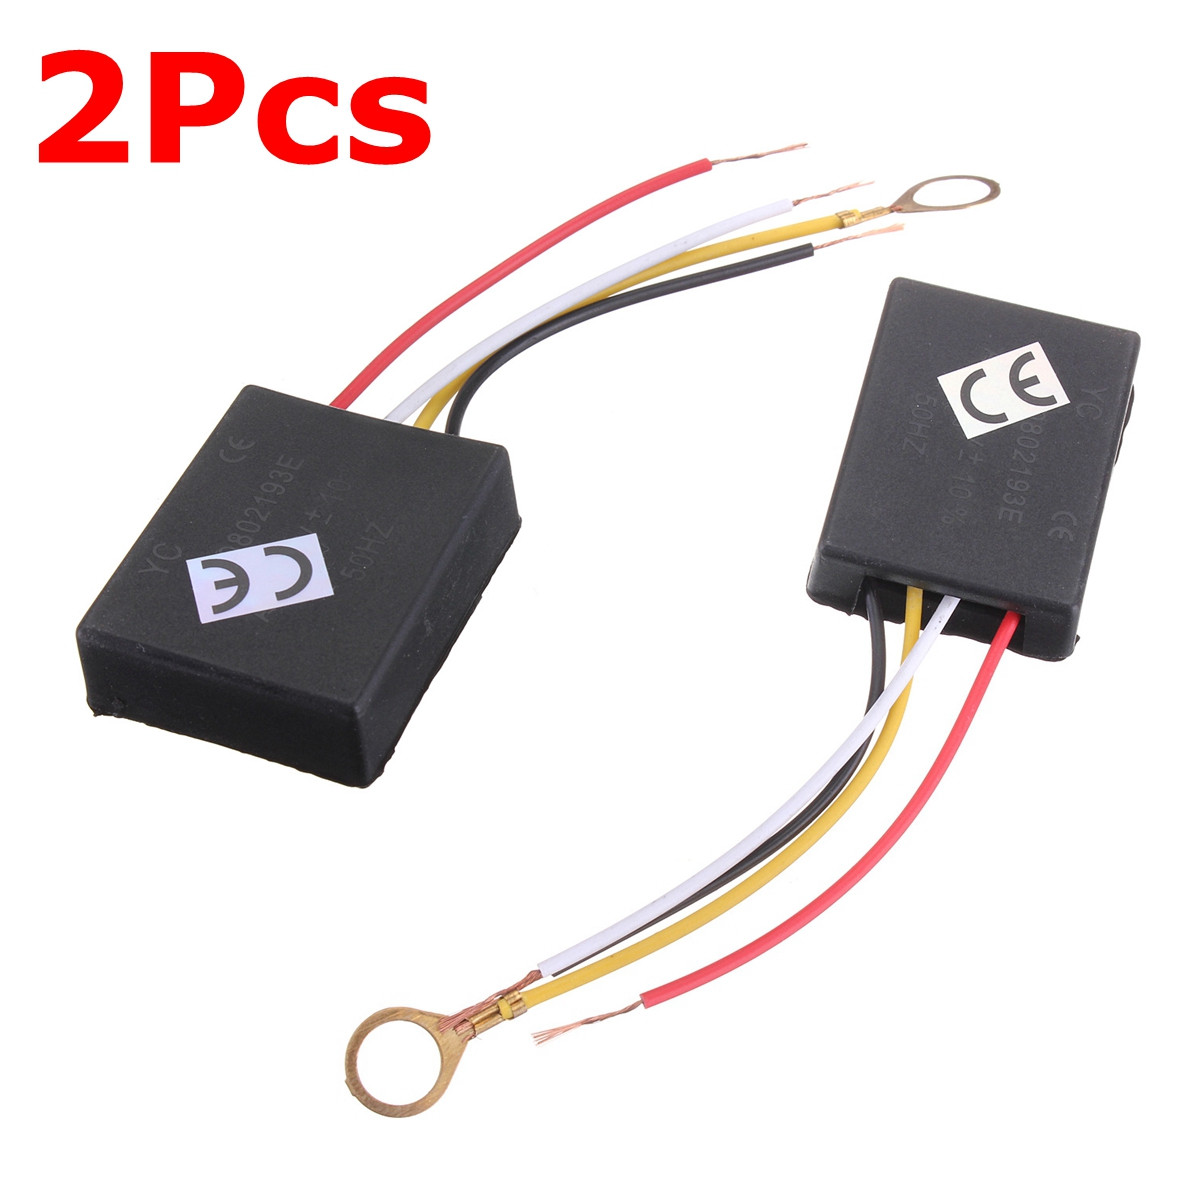 2Pcs 3 Way 110/220V Table Desk Light Lamp Touch Switch Control Sensor Dimmer 2Pcs Repair for Bulbs